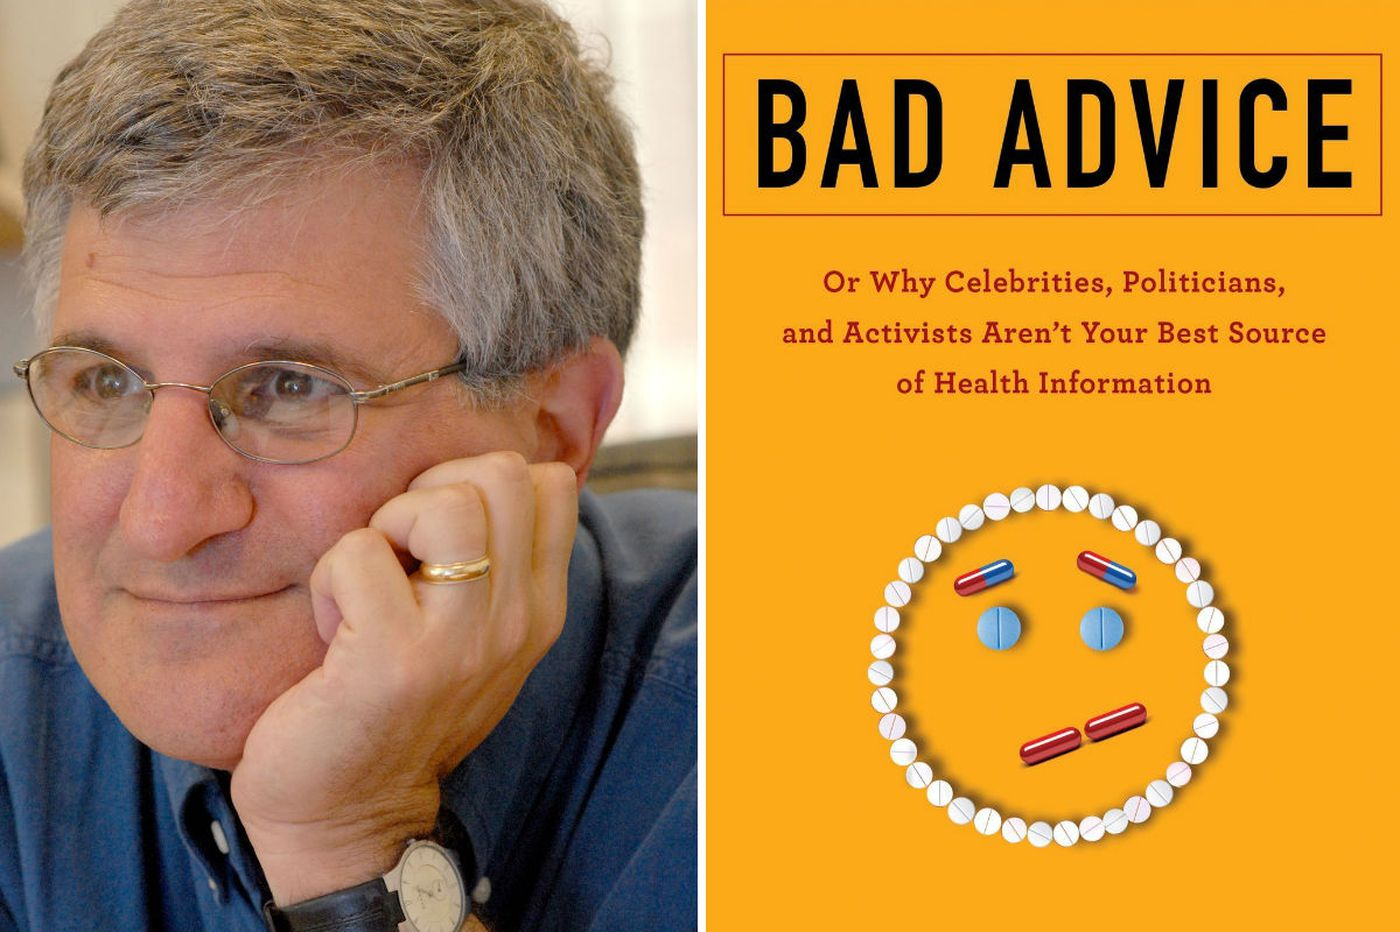 'Bad Advice' by Penn scientist Paul A. Offit: Take back the science conversation in our culture